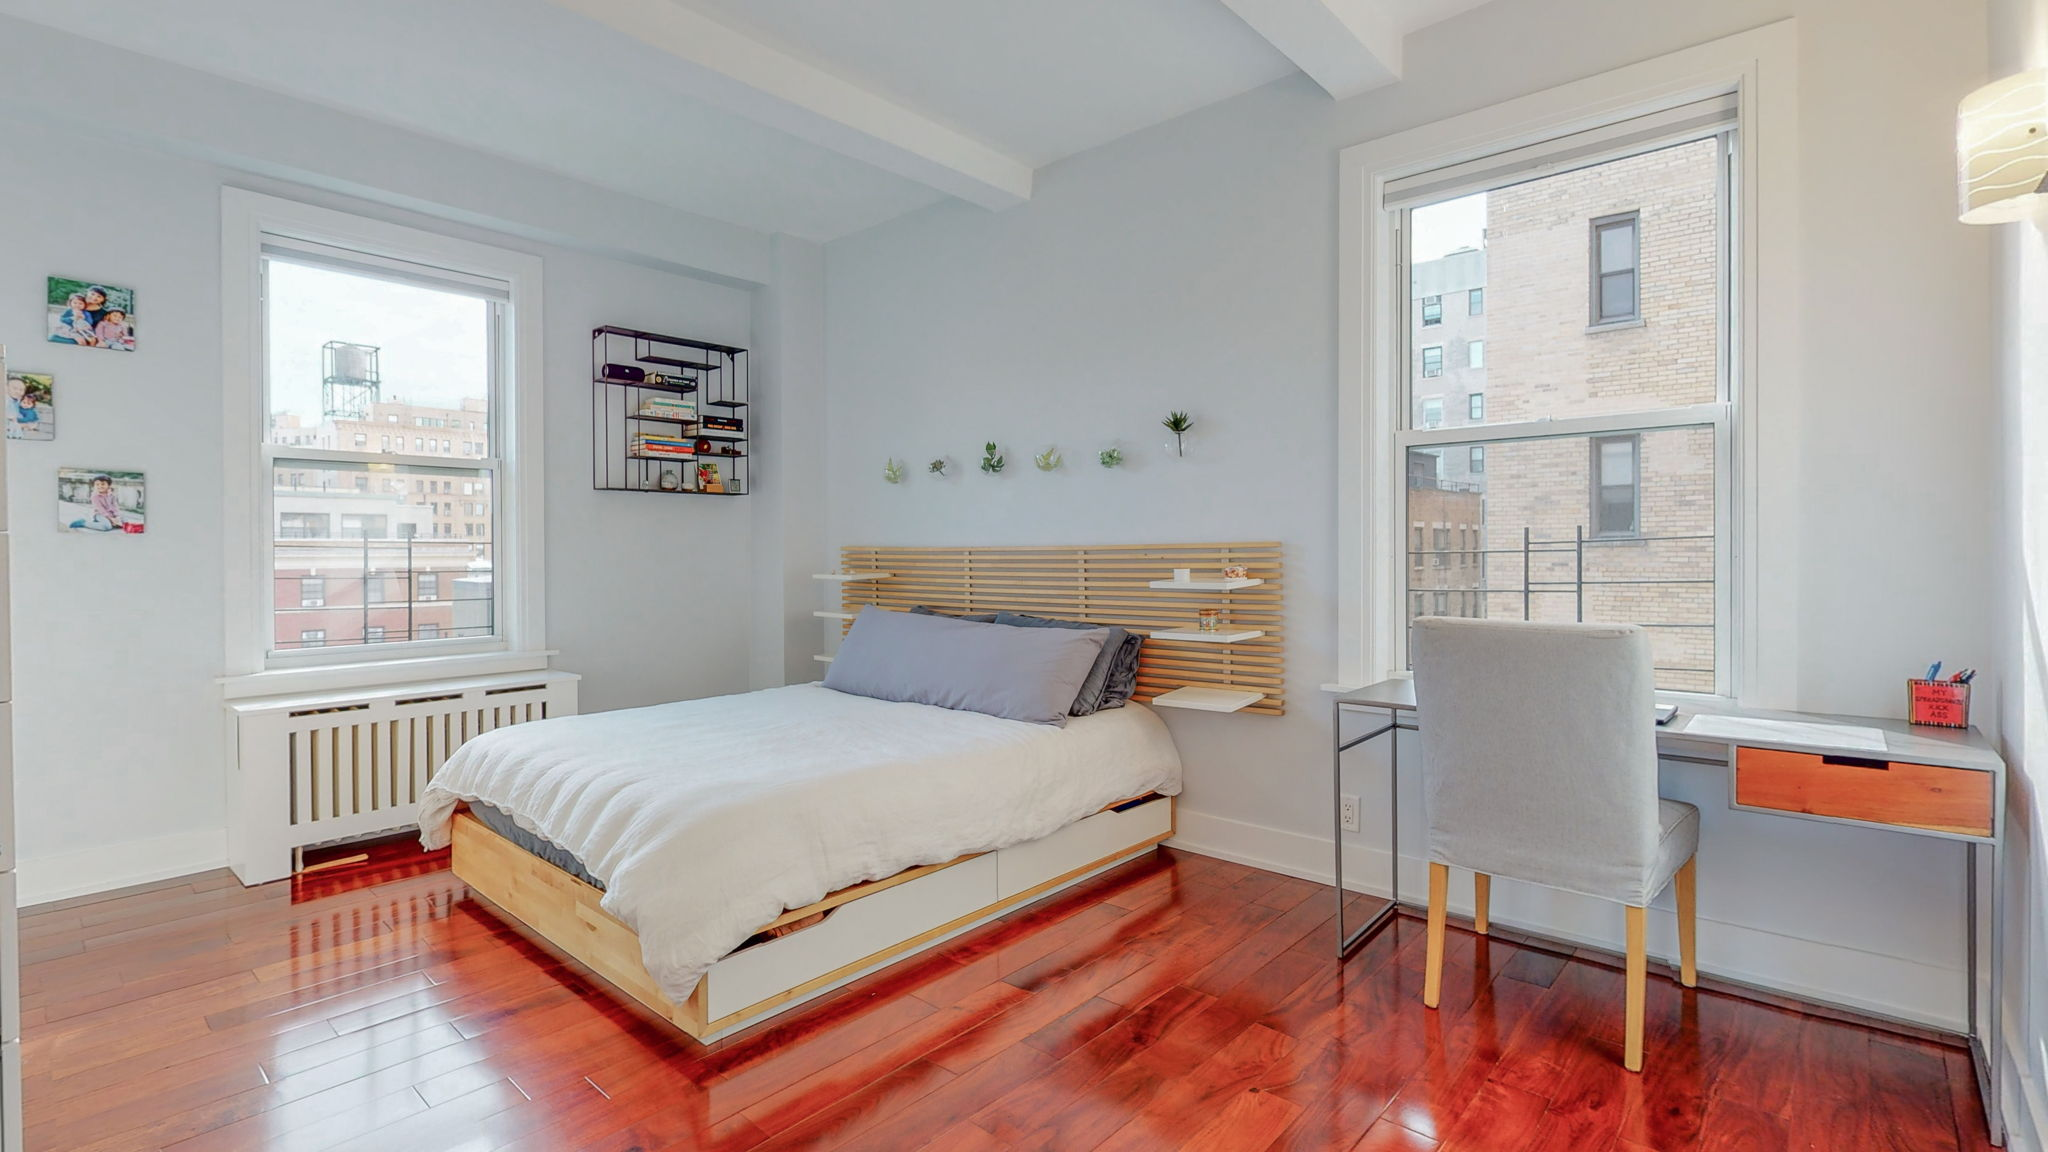 328 West 86th Street, New York, New York, New York, United States 10024, 2 Bedrooms Bedrooms, ,1 BathroomBathrooms,Co-op,SOLD,West 86th Street,1138